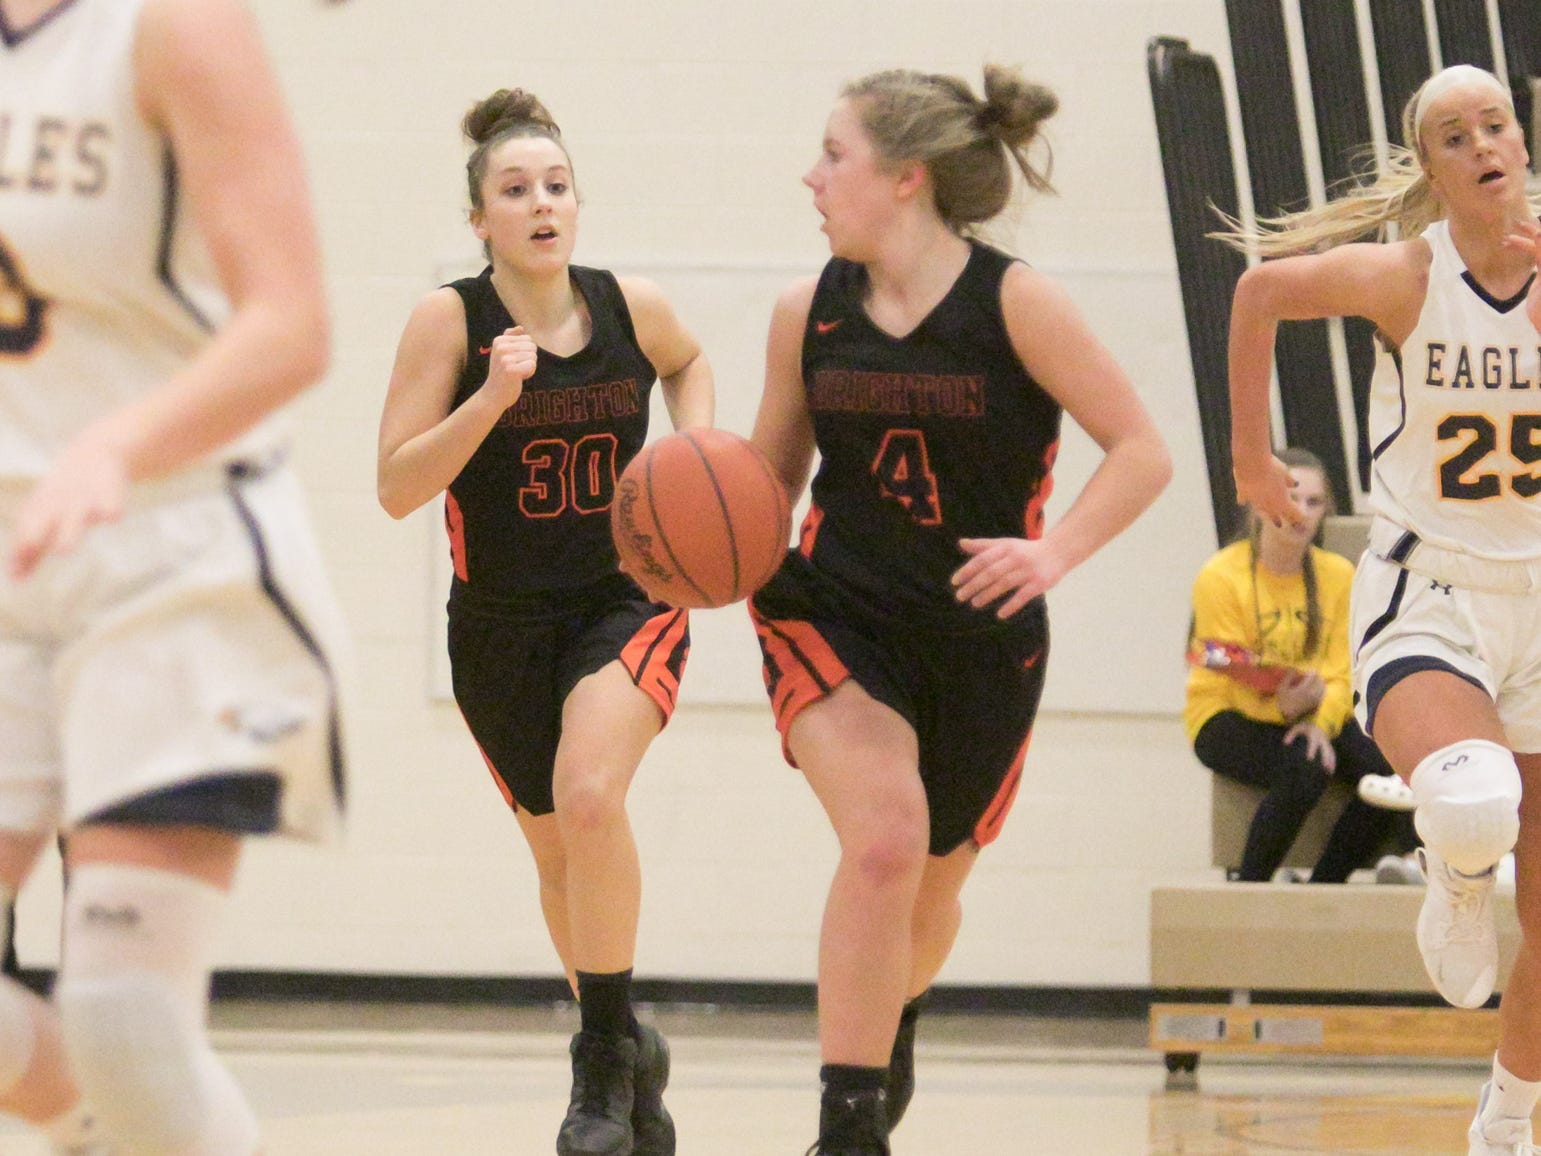 Bella Vogt of Brighton brings the ball in play along with Lauren Brown in the game at Hartland Friday, Feb. 8, 2019.